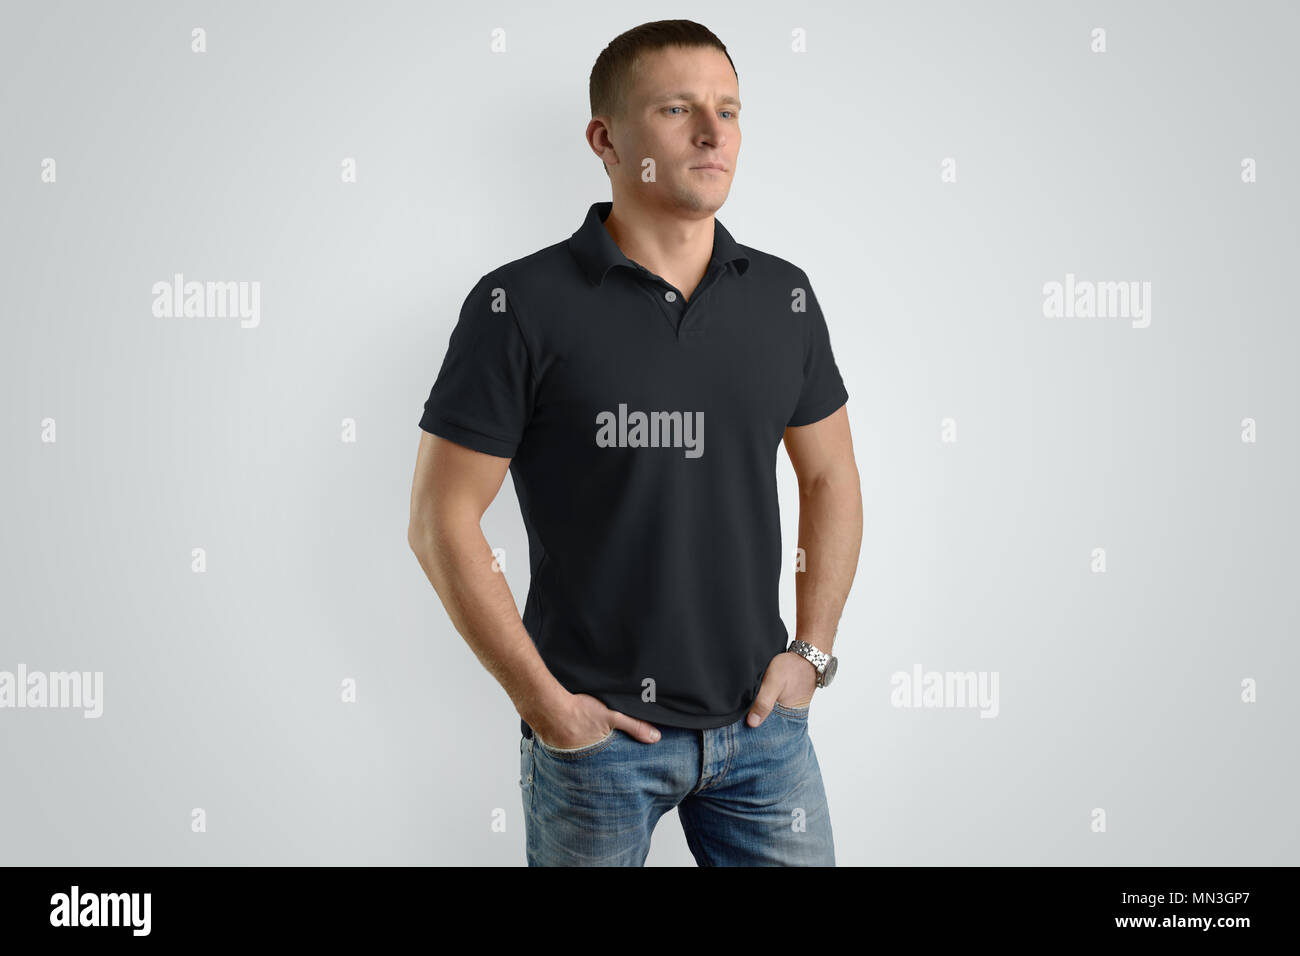 520cfc41cc0a Front Mockup black polo shirt on a guy for an example design. Man isolated  on